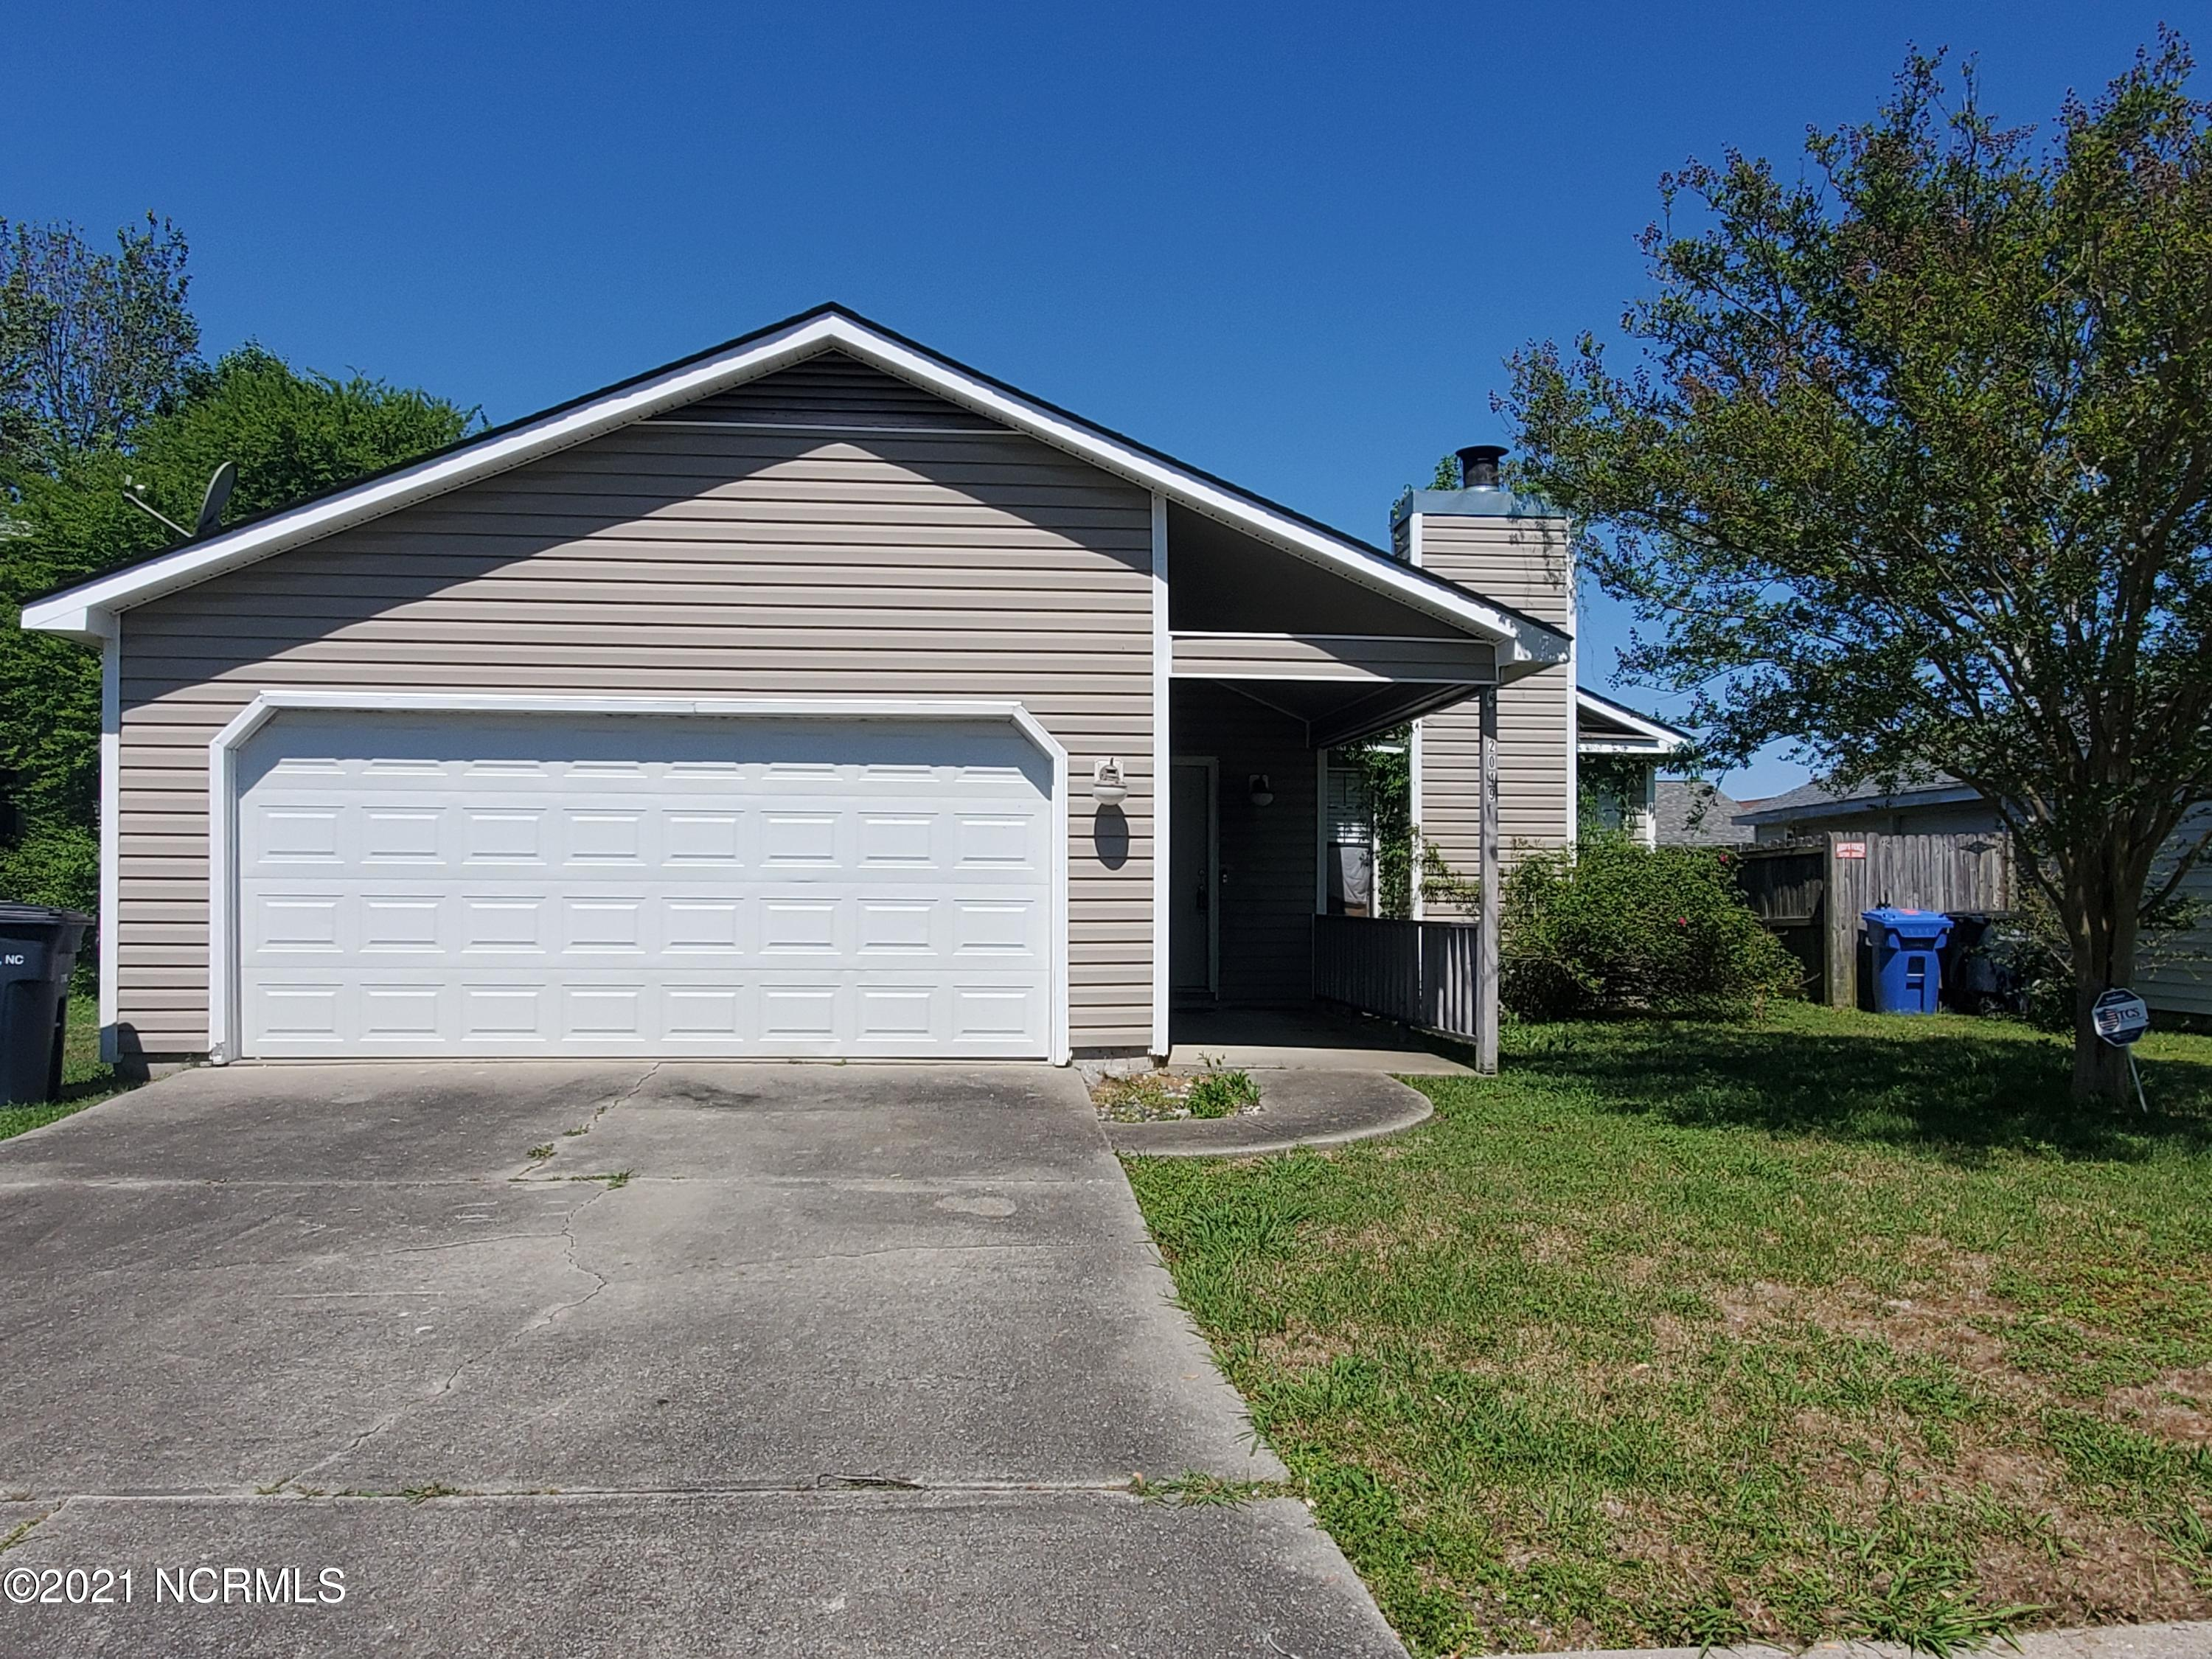 3 bedroom, 2 bathroom home in Foxhorn Village.  The living room features a wood burning fireplace.  The 2 car garage has an additional utility room for the washer and dryer and attic access.  Step out back to enjoy the nice sized fenced in backyard!  This home is a true fixer upper and is ready for a new owner to bring it back to its full potential!  This home is an as-is short sale.